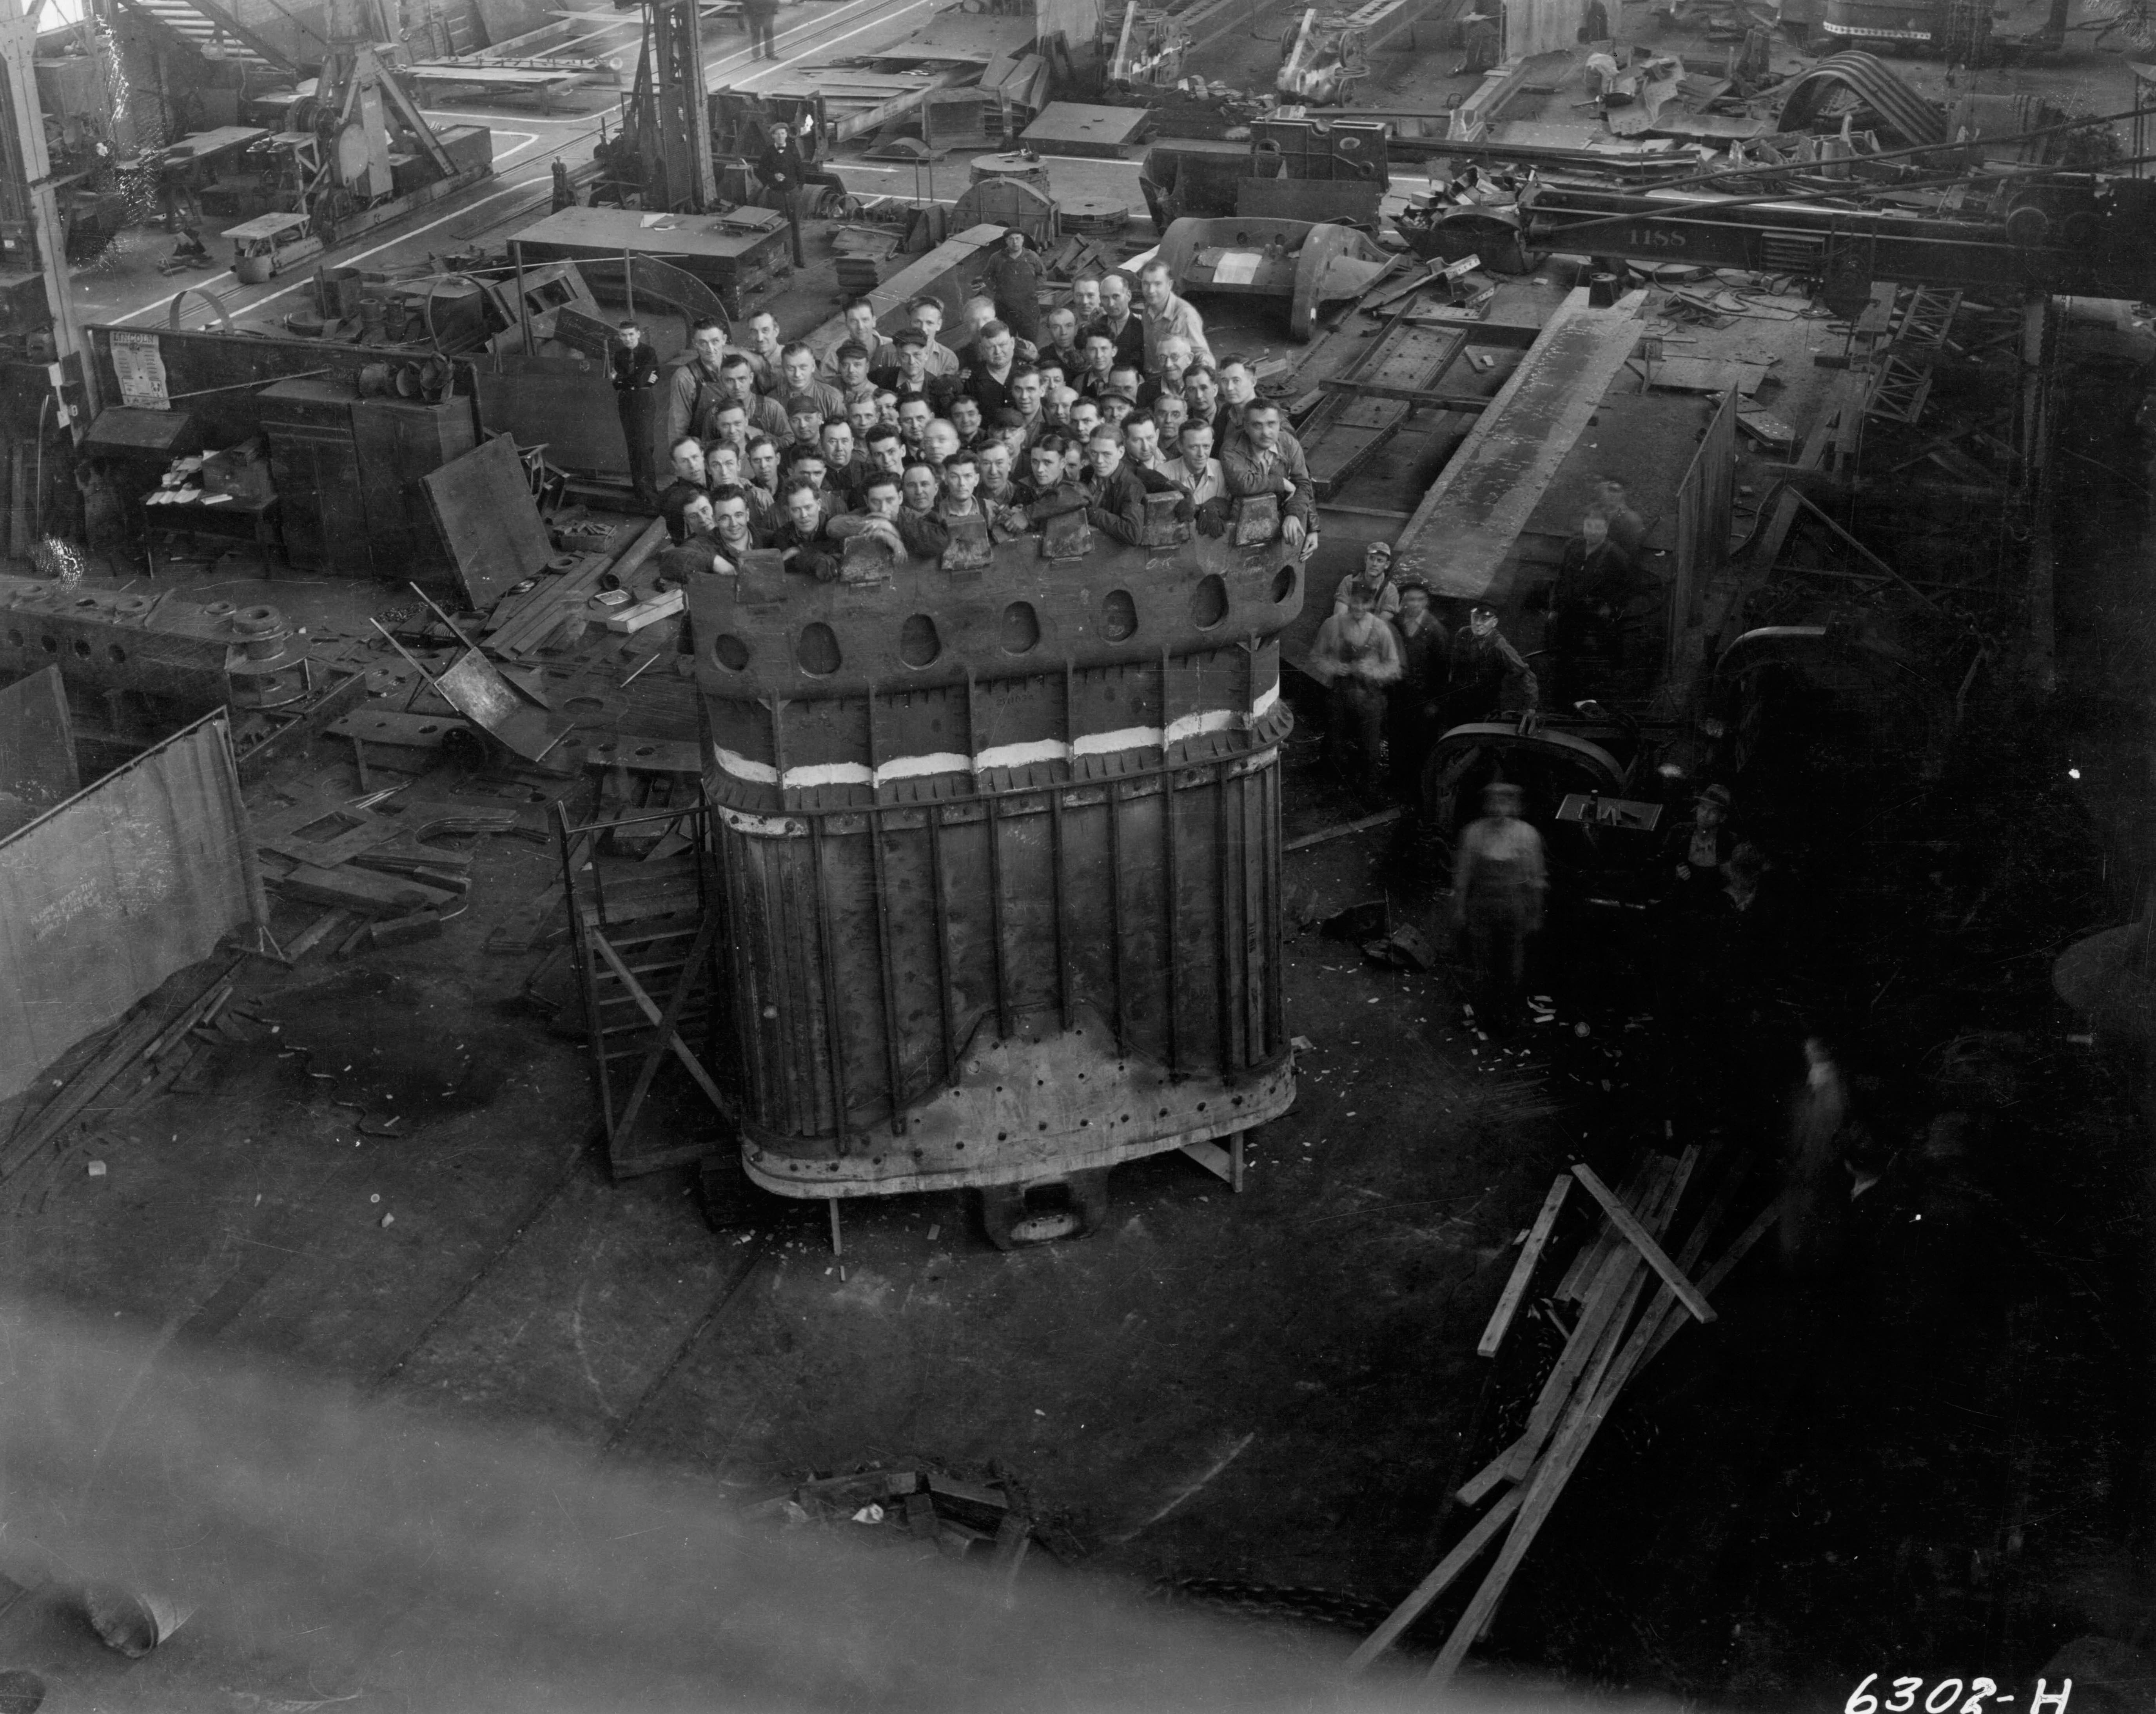 <table class=&quot;lightbox&quot;><tr><td colspan=2 class=&quot;lightbox-title&quot;>Bucyrus International Inc. Employees</td></tr><tr><td colspan=2 class=&quot;lightbox-caption&quot;>52 men stand inside a massive dipper for a 950B stripping shovel manufactured at the Bucyrus-Erie plant in South Milwaukee.</td></tr><tr><td colspan=2 class=&quot;lightbox-spacer&quot;></td></tr><tr class=&quot;lightbox-detail&quot;><td class=&quot;cell-title&quot;>Source: </td><td class=&quot;cell-value&quot;>From the Historic Photo Collection of the Milwaukee Public Library. Reprinted with permission. <br /><a href=&quot;http://content.mpl.org/cdm/singleitem/collection/HstoricPho/id/2418/rec/3&quot; target=&quot;_blank&quot;>Milwaukee Public Library</a></td></tr><tr class=&quot;filler-row&quot;><td colspan=2>&nbsp;</td></tr></table>